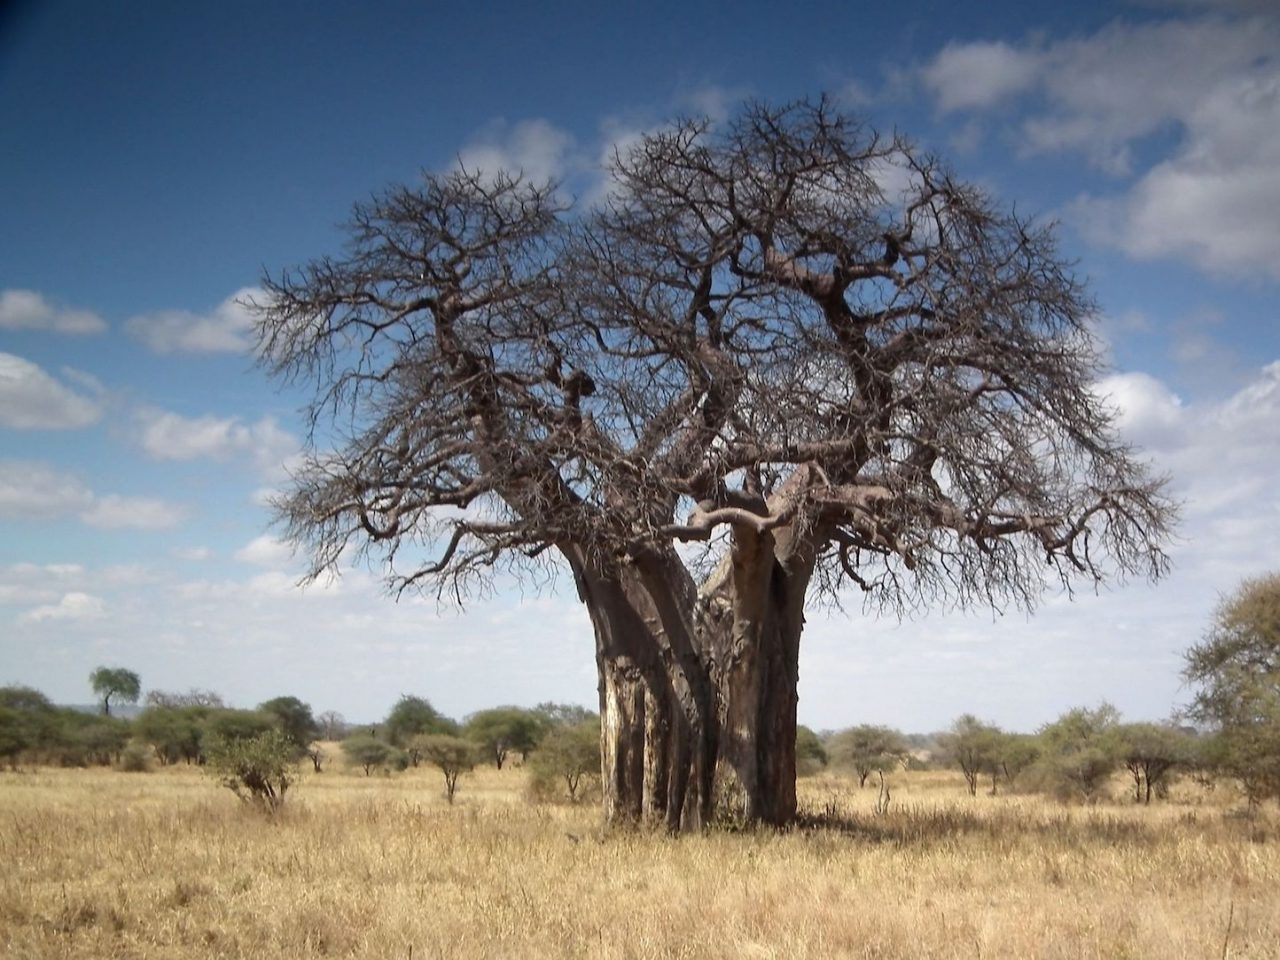 Photo: Baobab tree (Adansonia digitata), Northern Tanzania. © 2010 Nevit Dilmen. CC-BY-SA-3 via Wikimedia Commons.